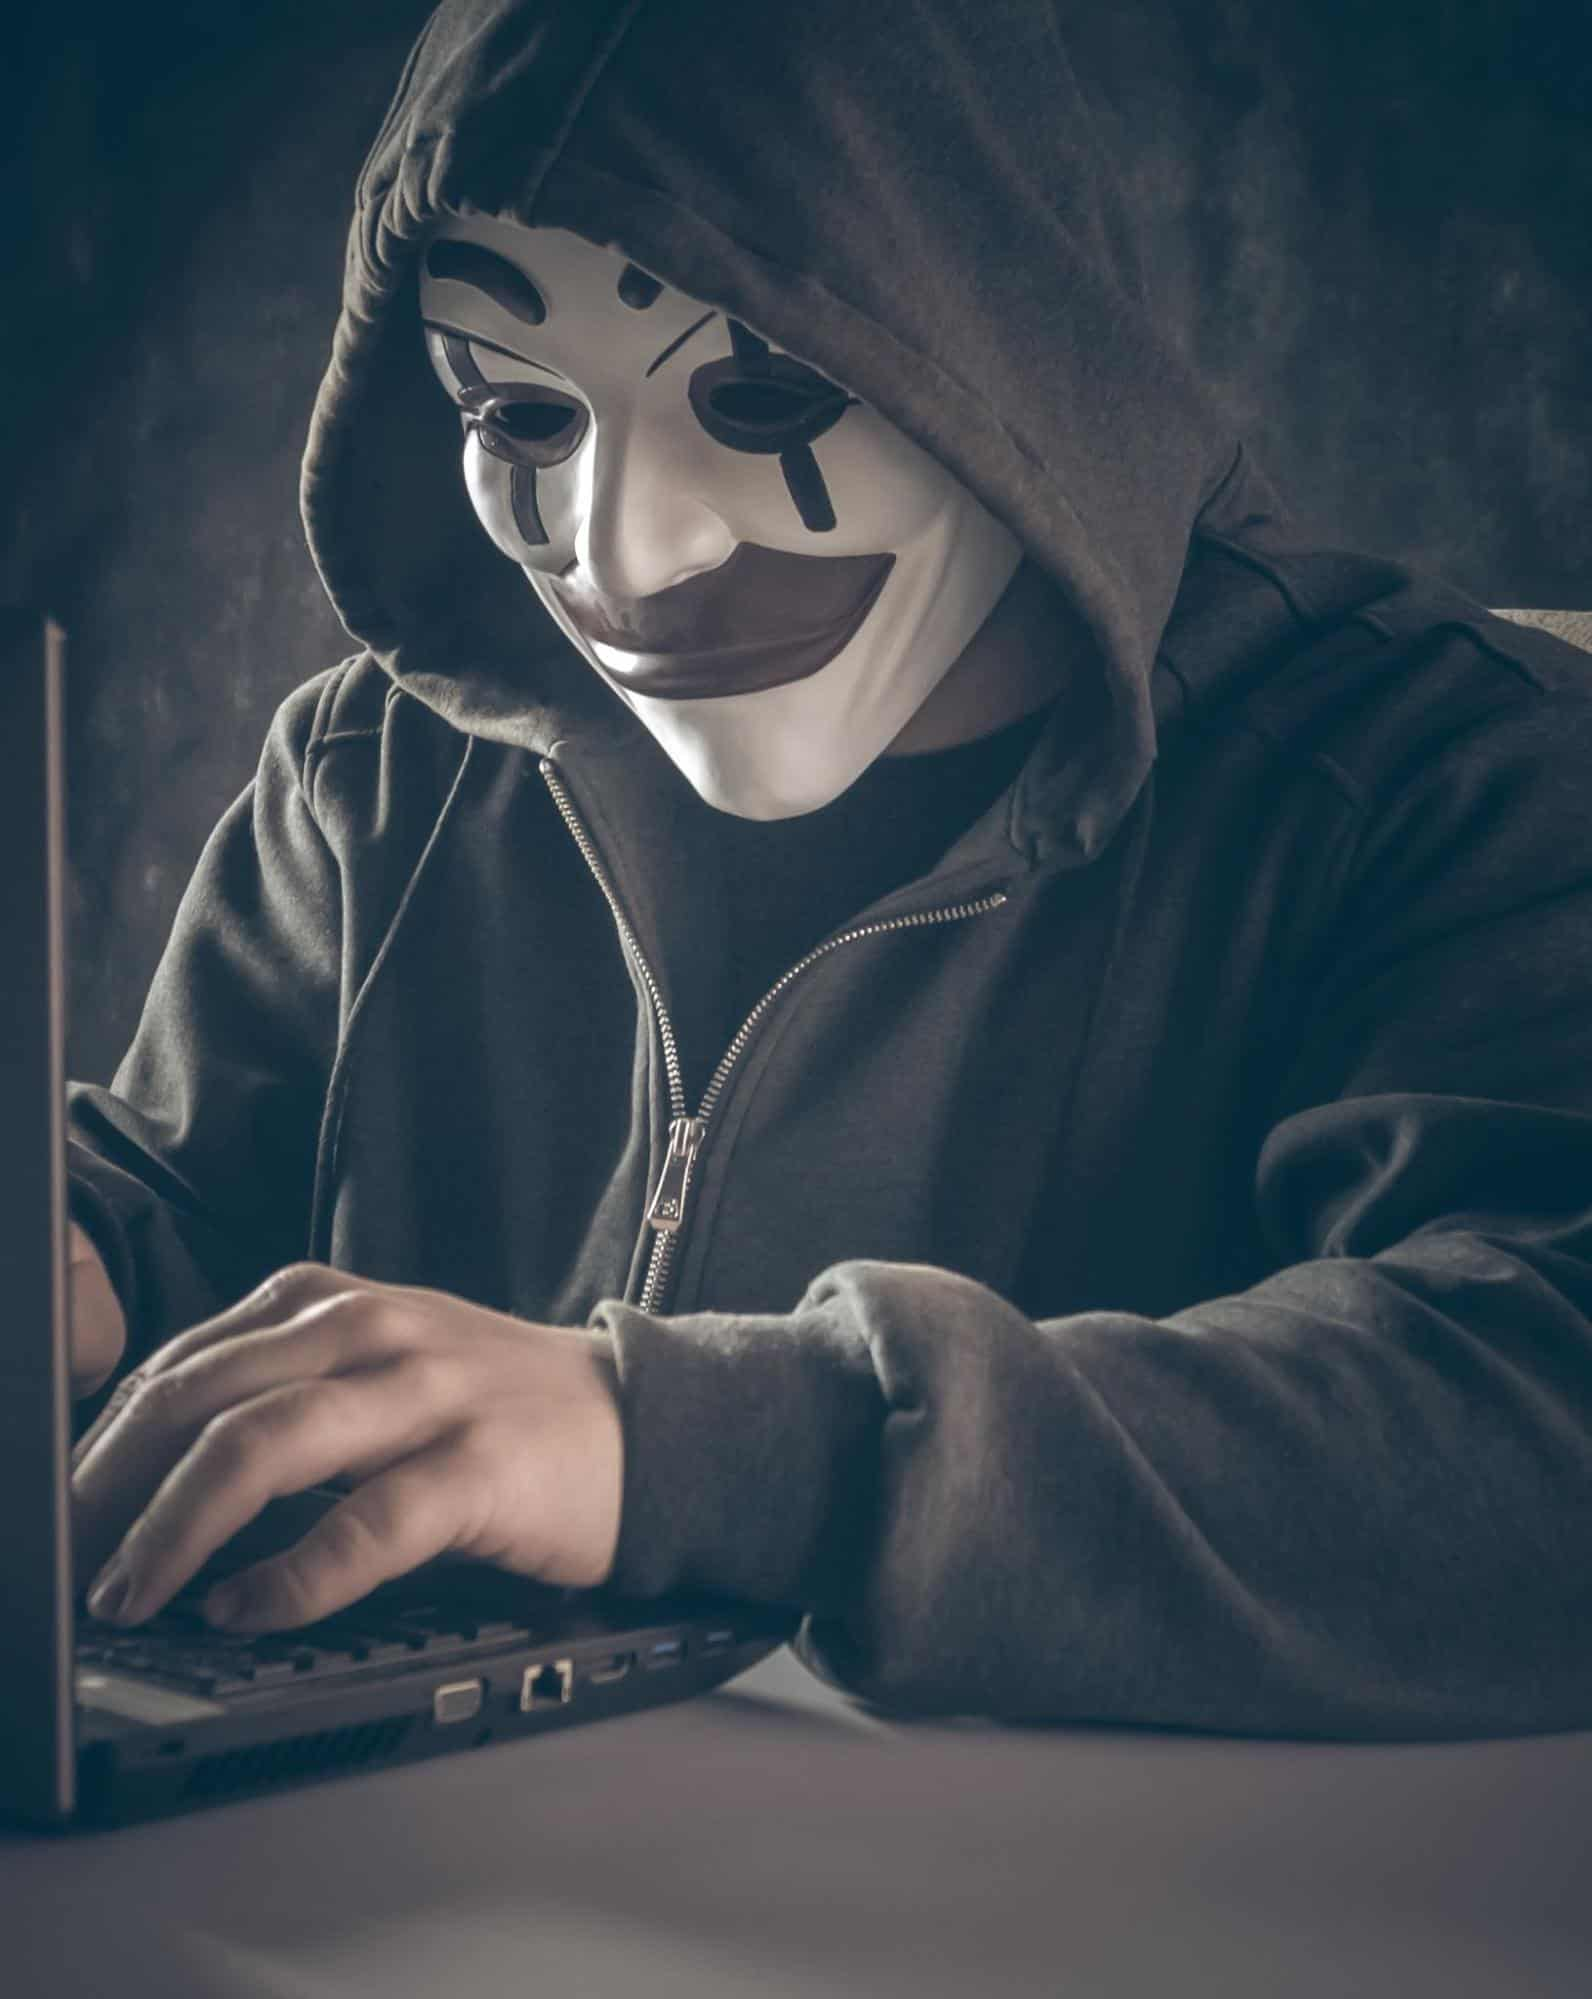 Cybercriminals and Ransomware